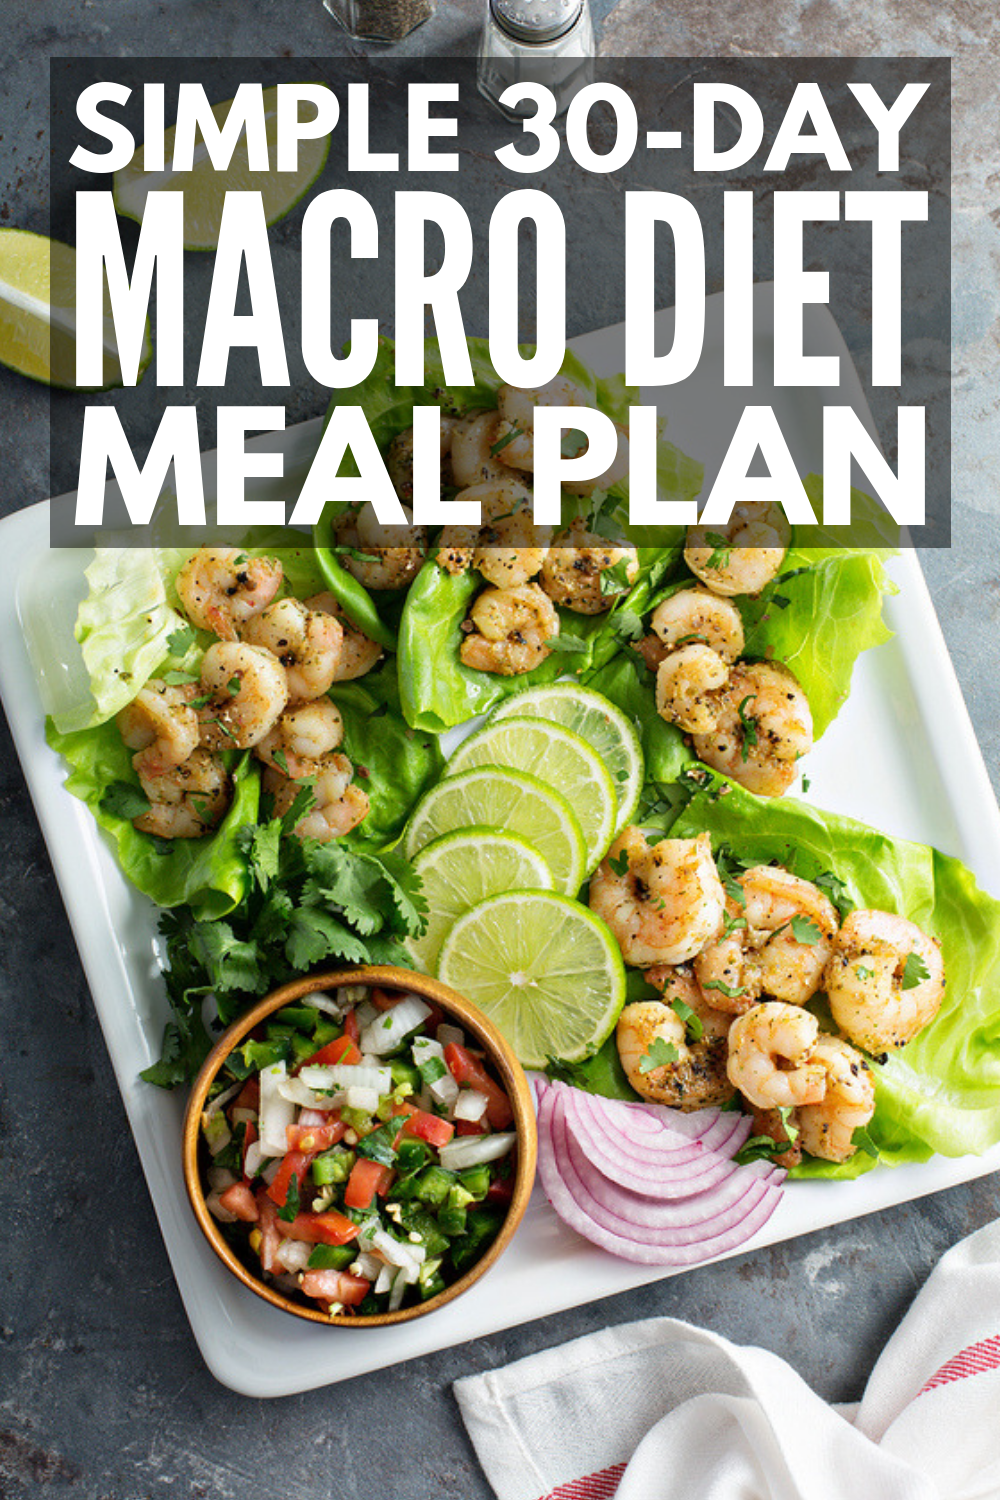 120 Mix and Match IIFYM Recipes for Weight Loss | Counting macros – or…